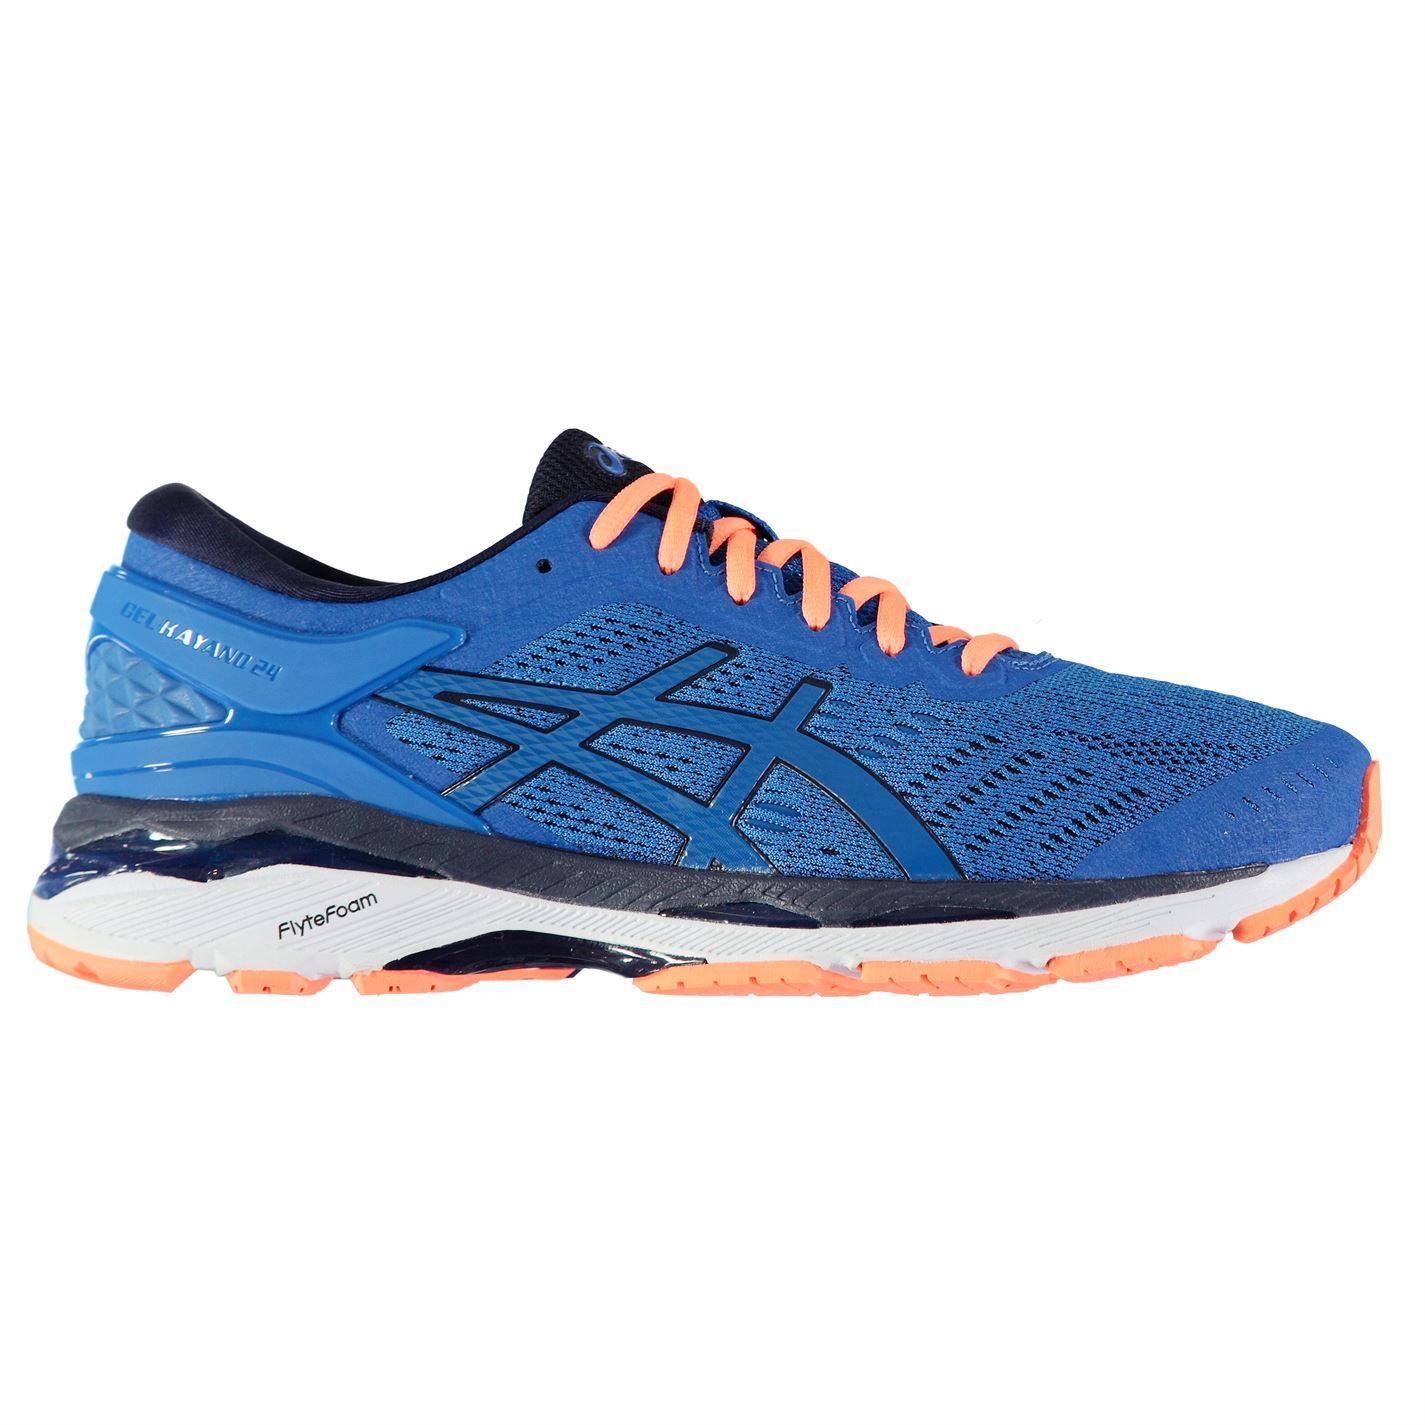 Asics  Schuhes Herren Gents Kayano 24 Running Schuhes  Footwear Laces Fastened d11a81